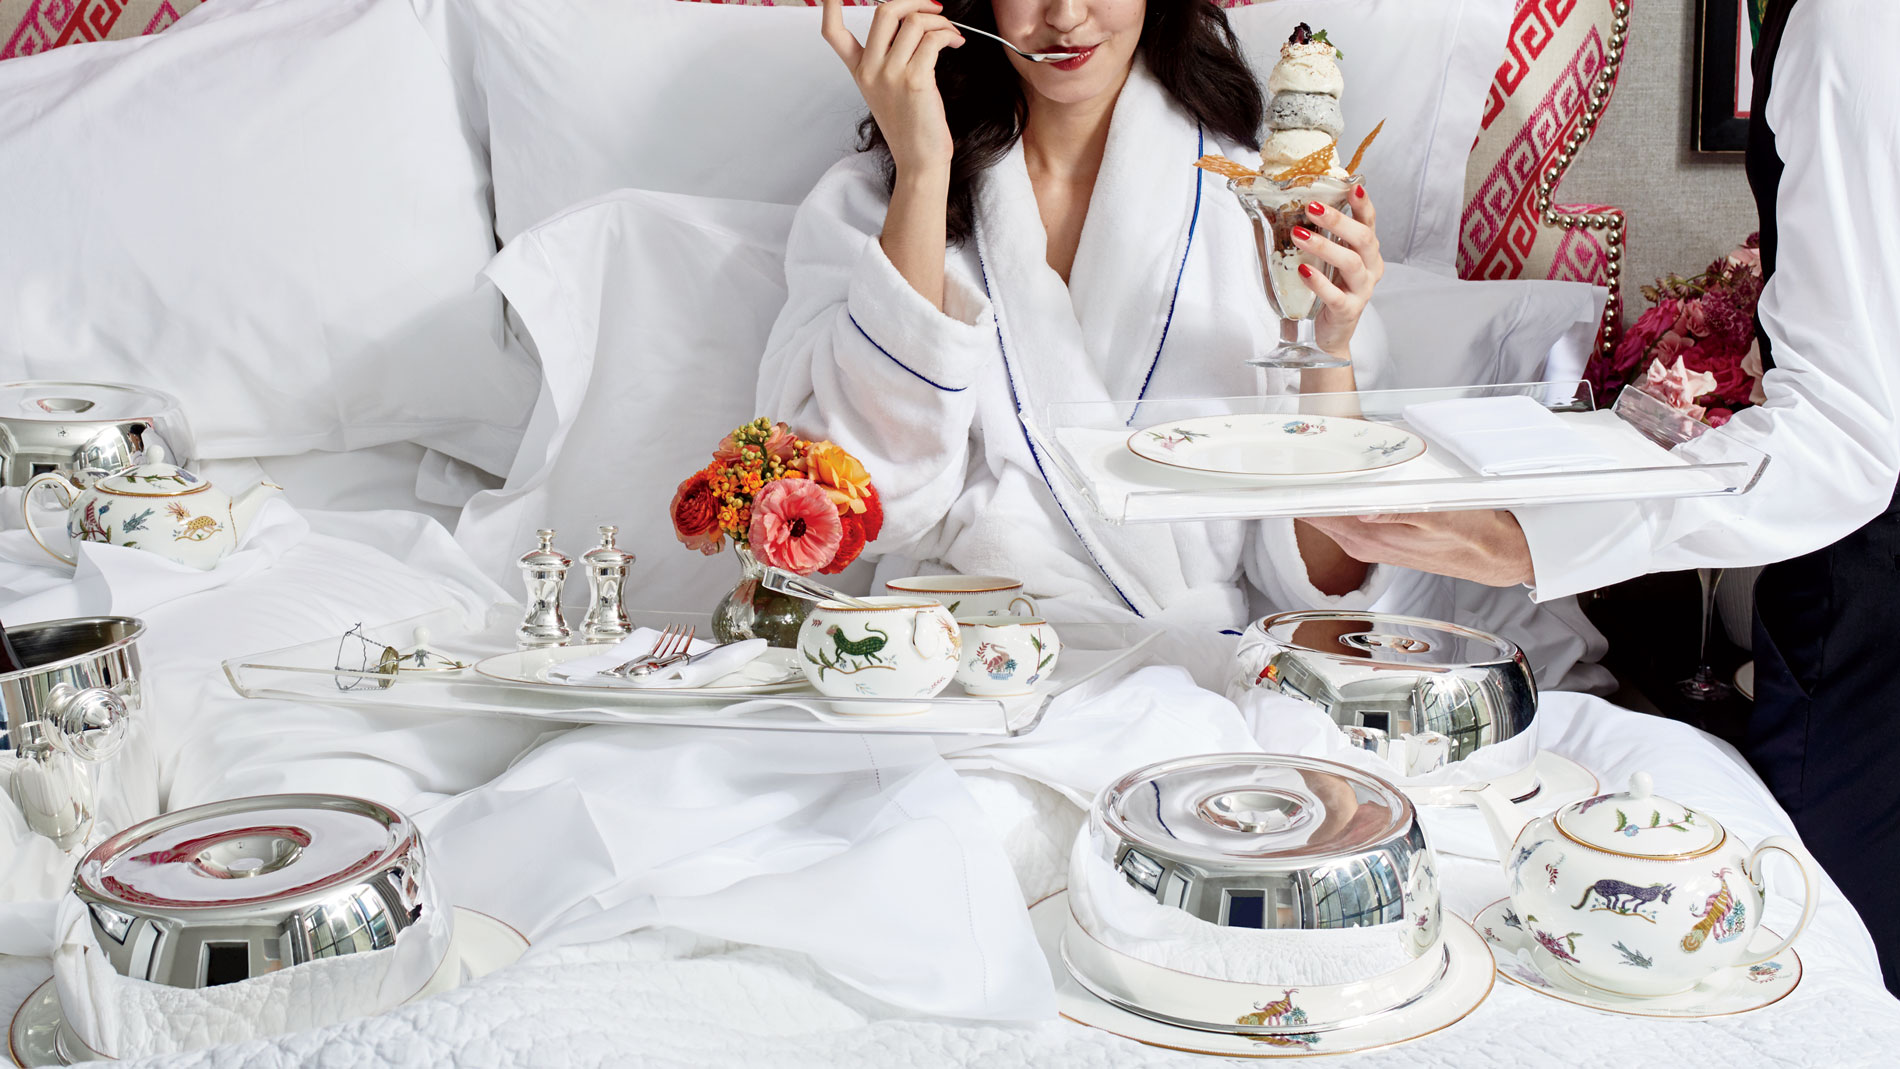 Room Service: No One Orders Hotel Room Service Anymore: Here's Why